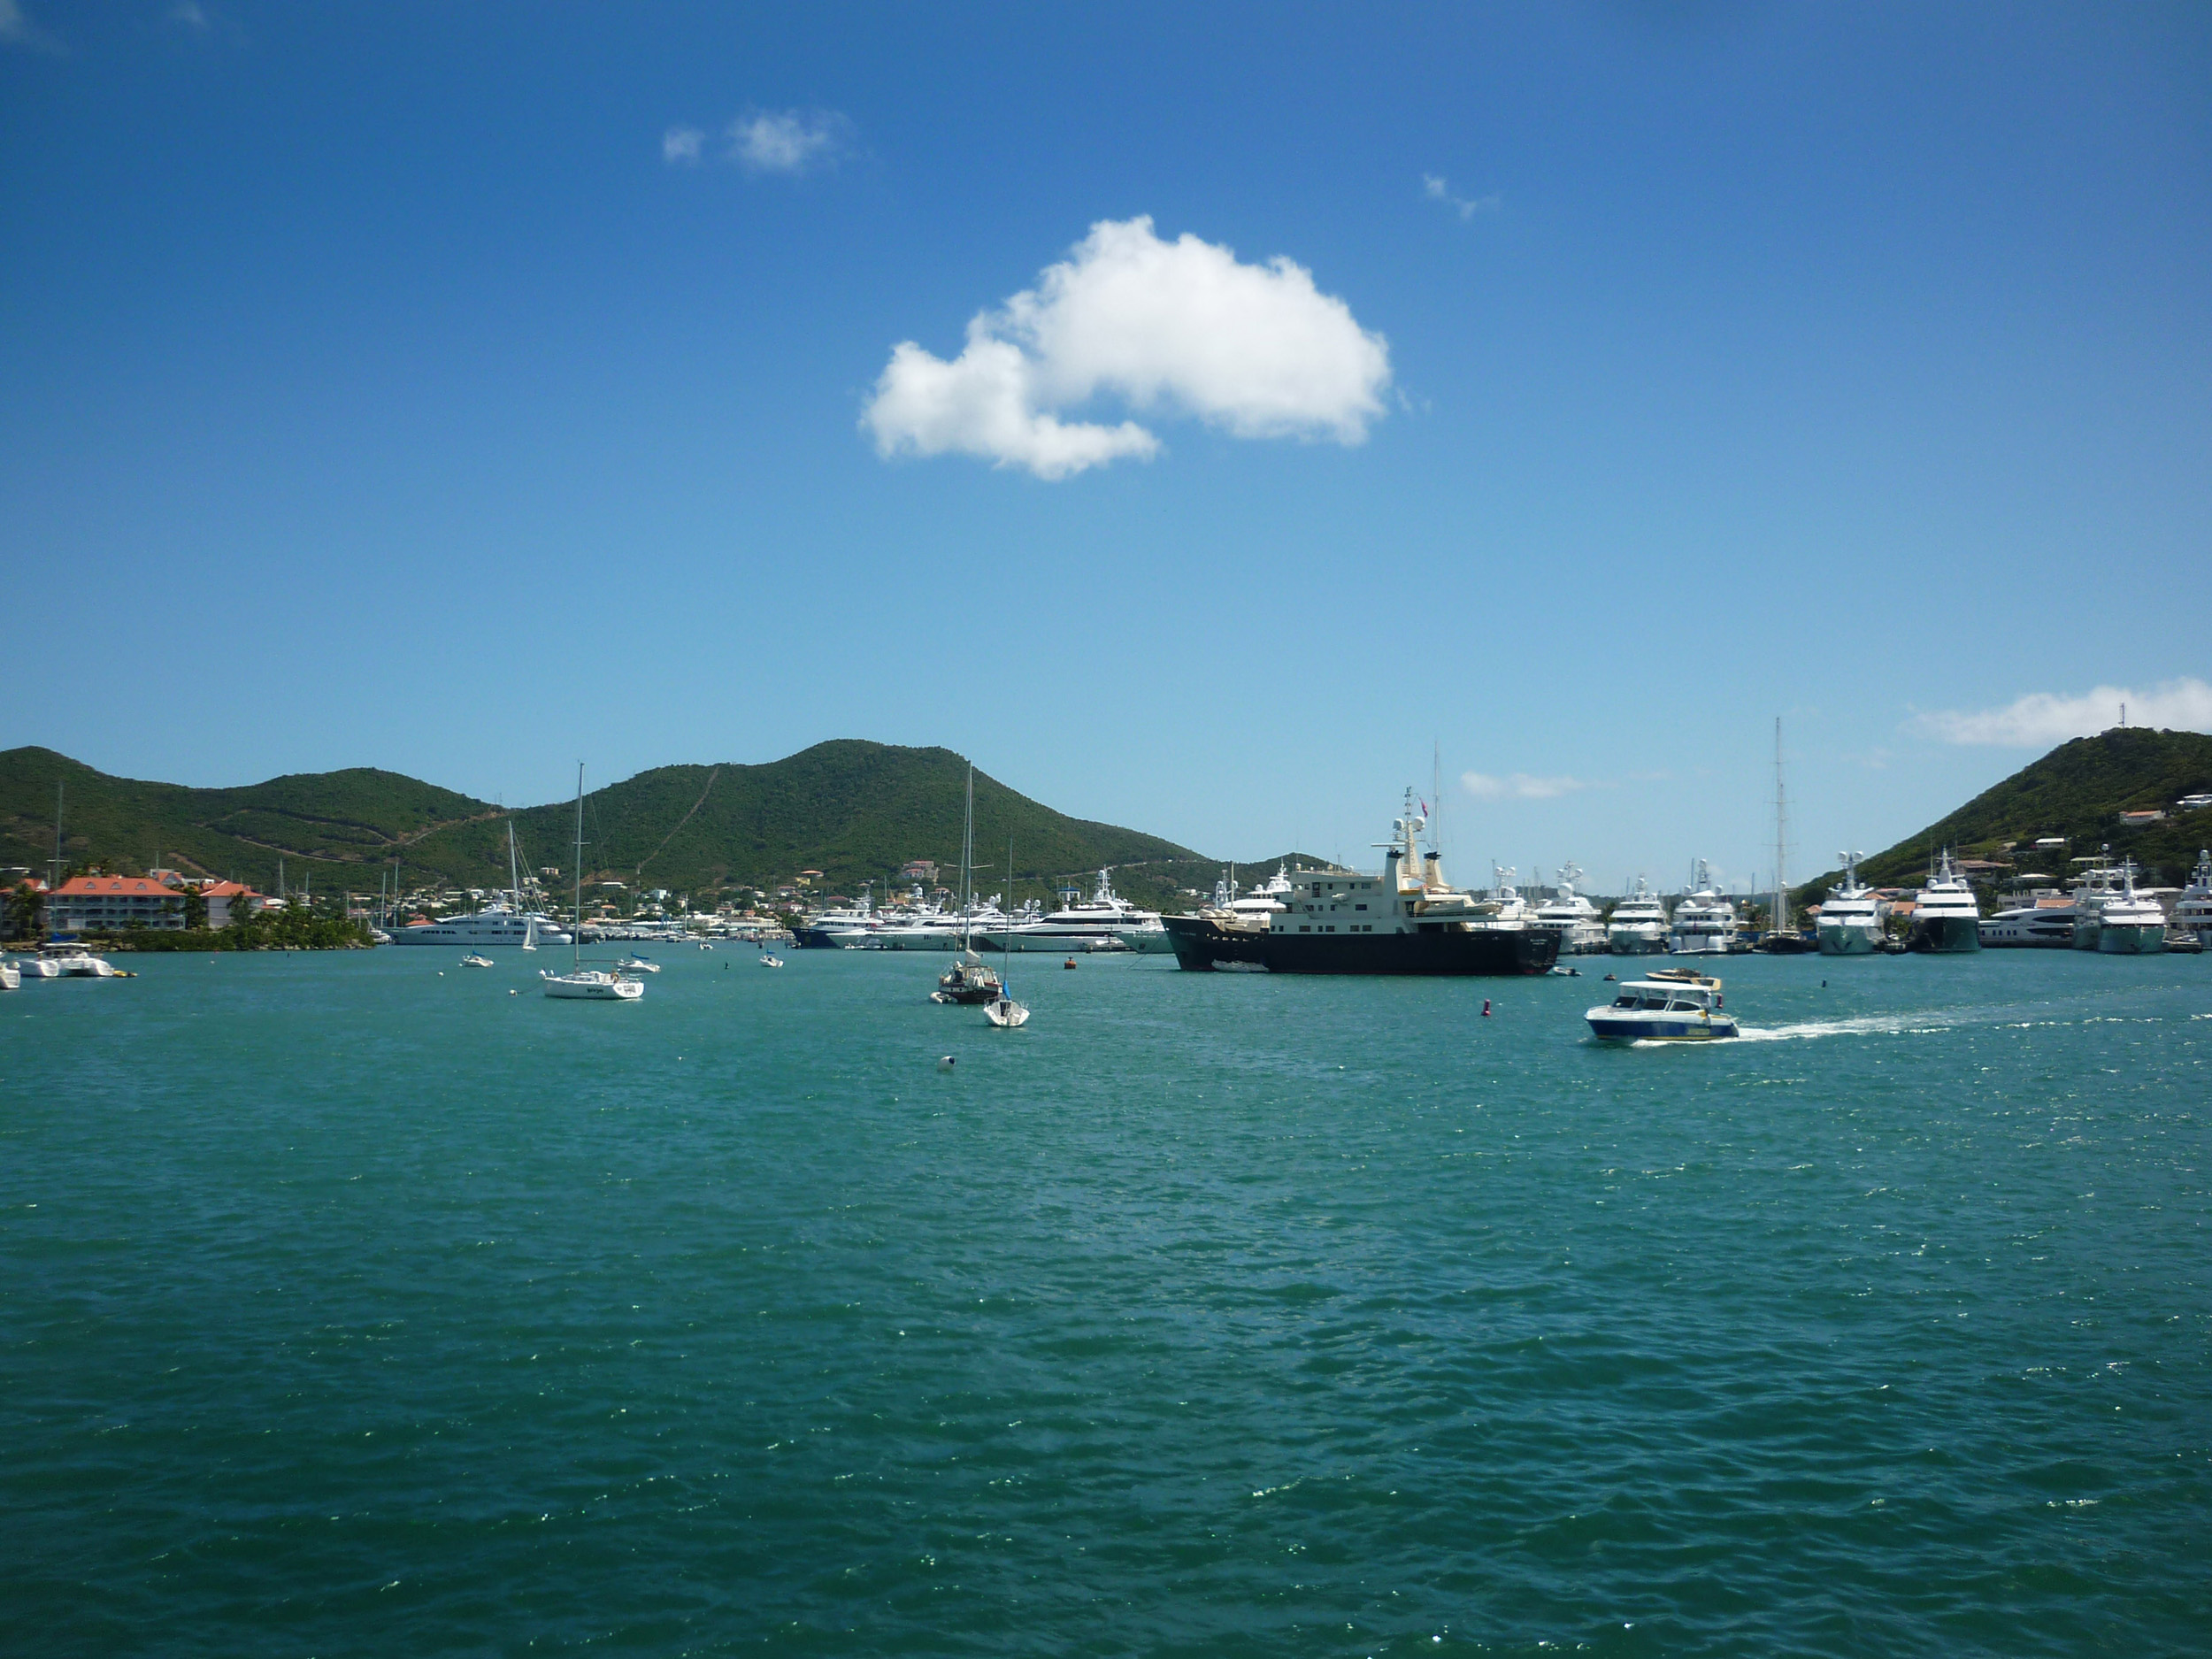 curise boats and motor yachts in the harbour at st maarten